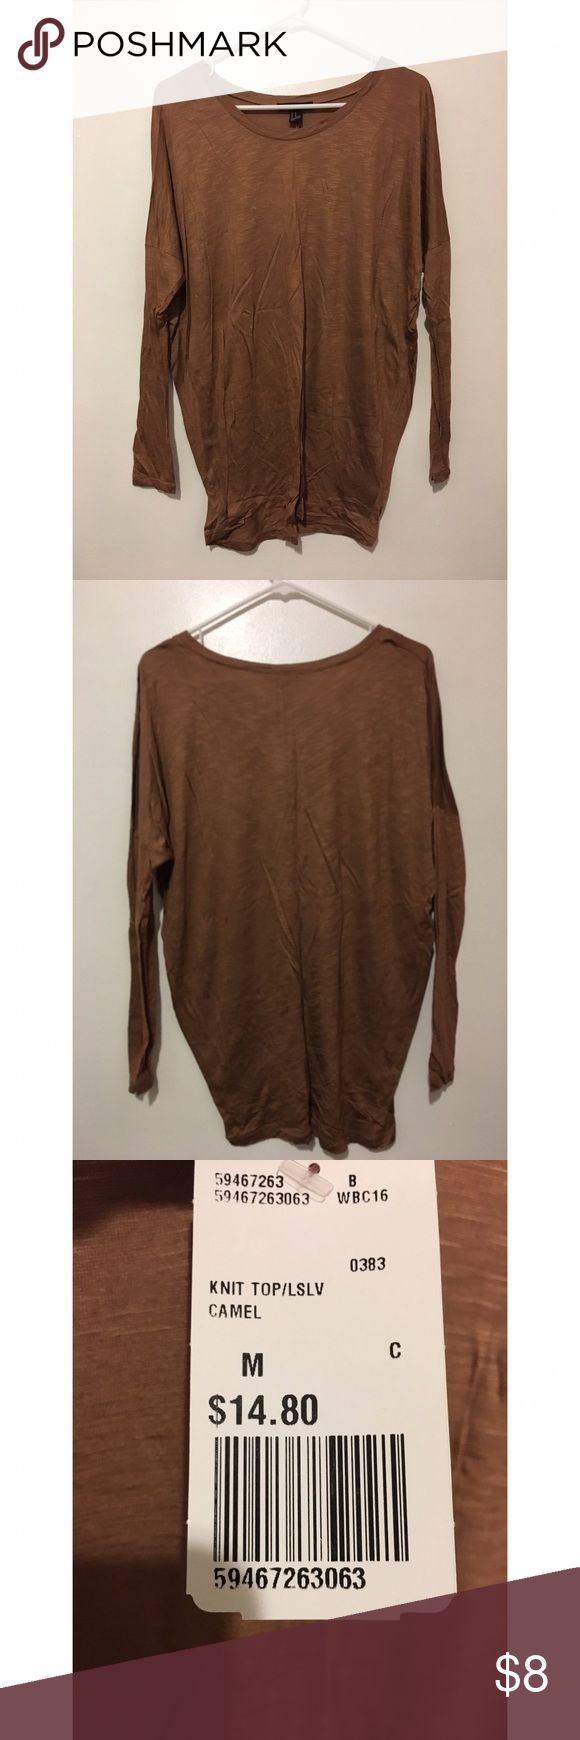 Camel long sleeve top Camel relaxed drop shoulder top Forever 21 Tops Tees - Long Sleeve